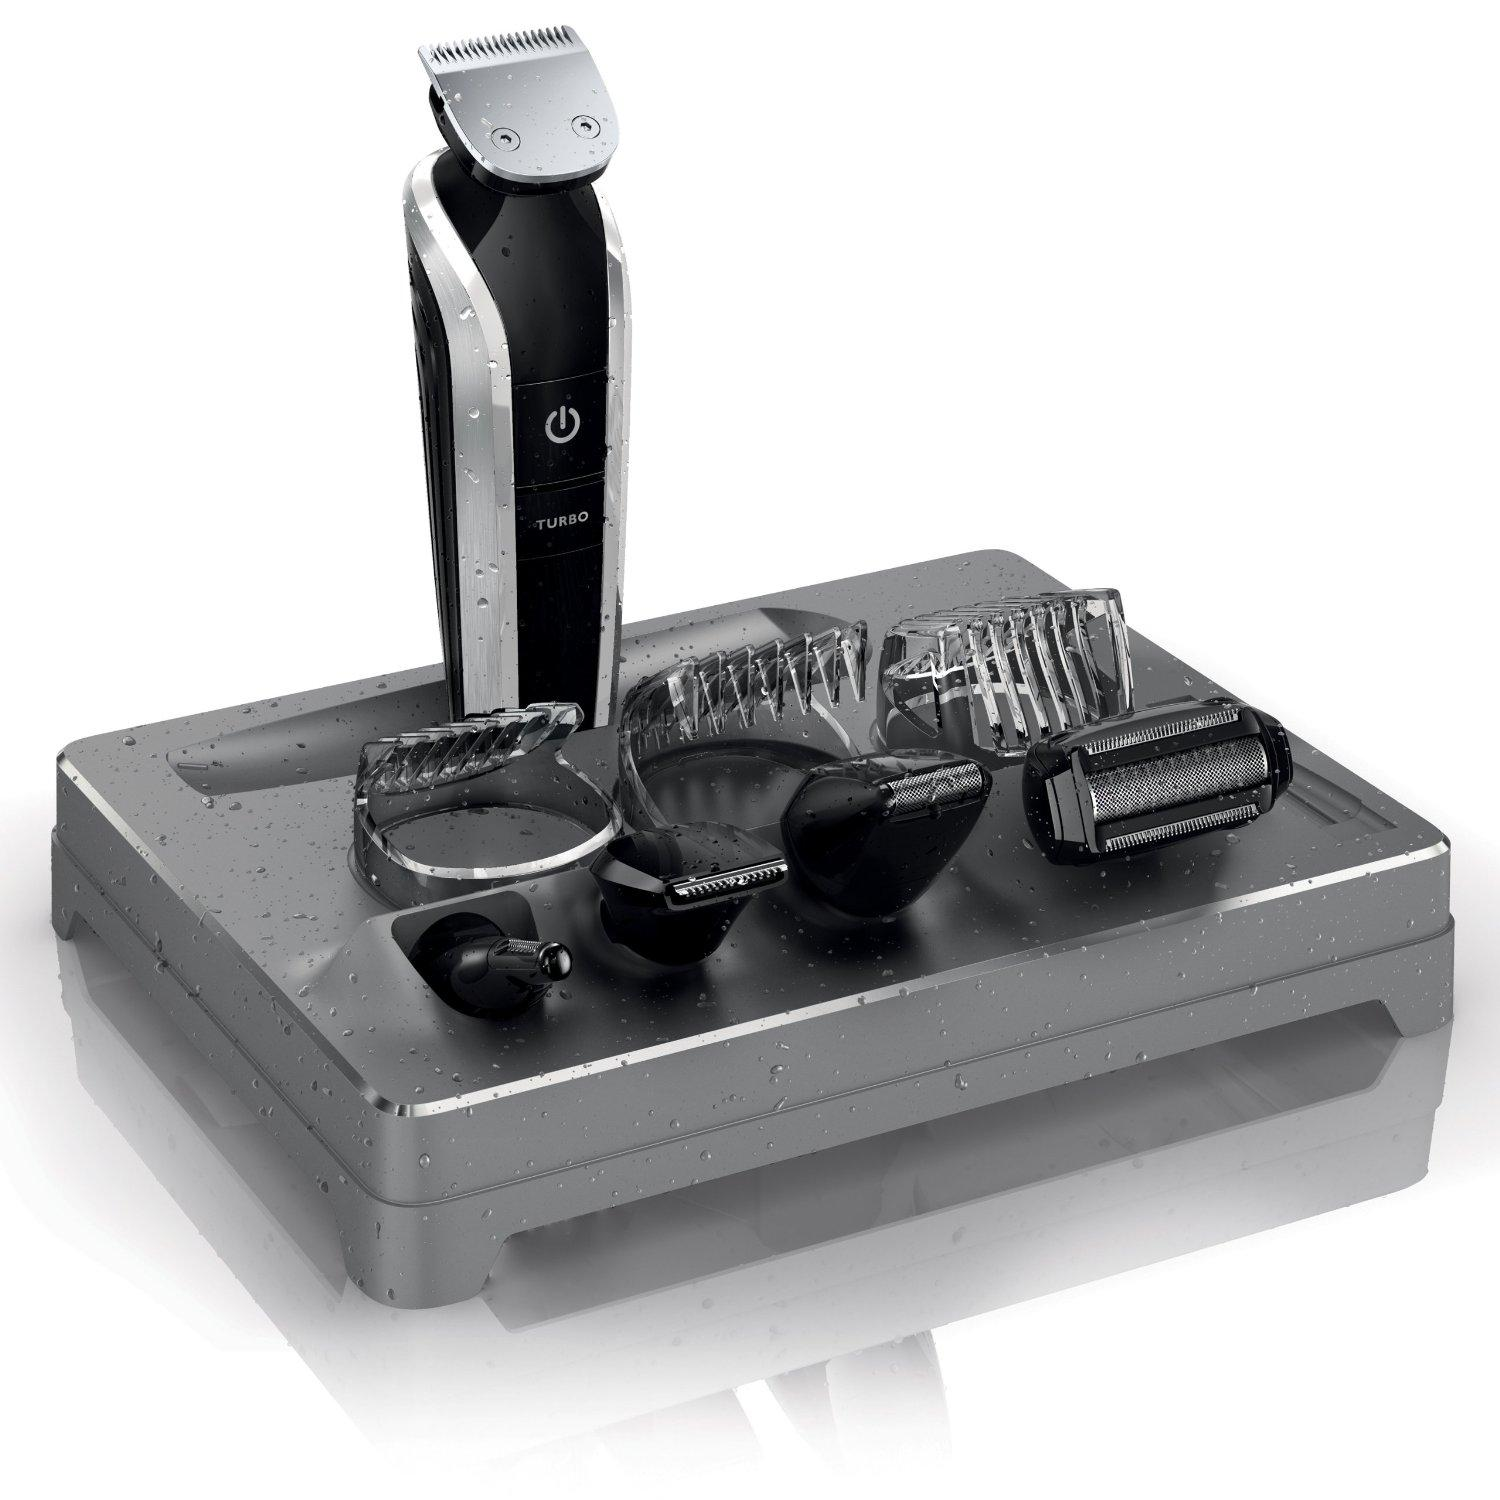 philips norelco qg3384 42 multigroom 7100 grooming kit packaging may vary beauty. Black Bedroom Furniture Sets. Home Design Ideas